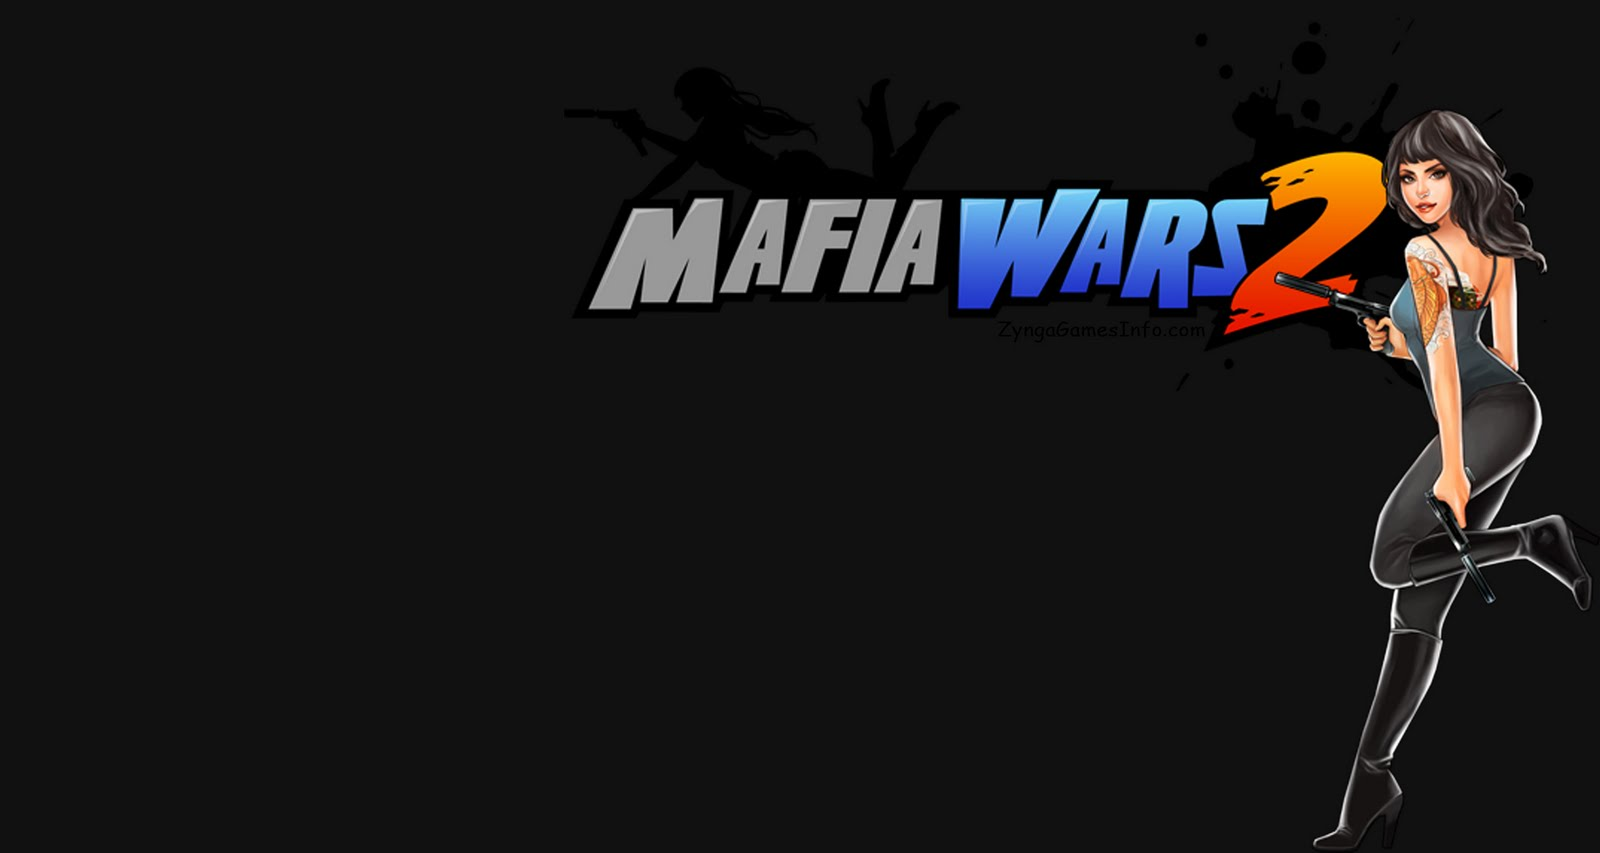 altarofkings mafia wars 2 wallpapers from the official